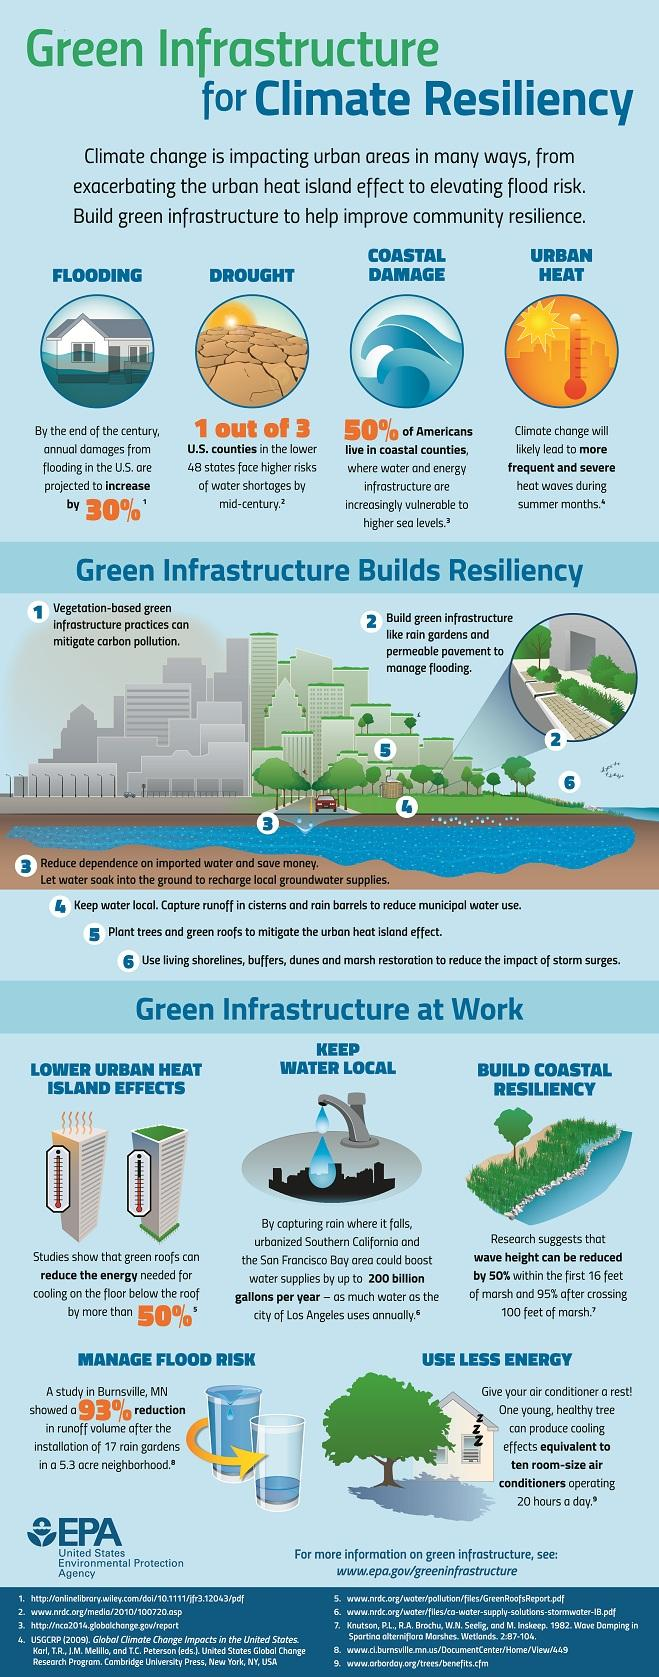 Green Infrastructure for Climate Resiliency Informational Flyer